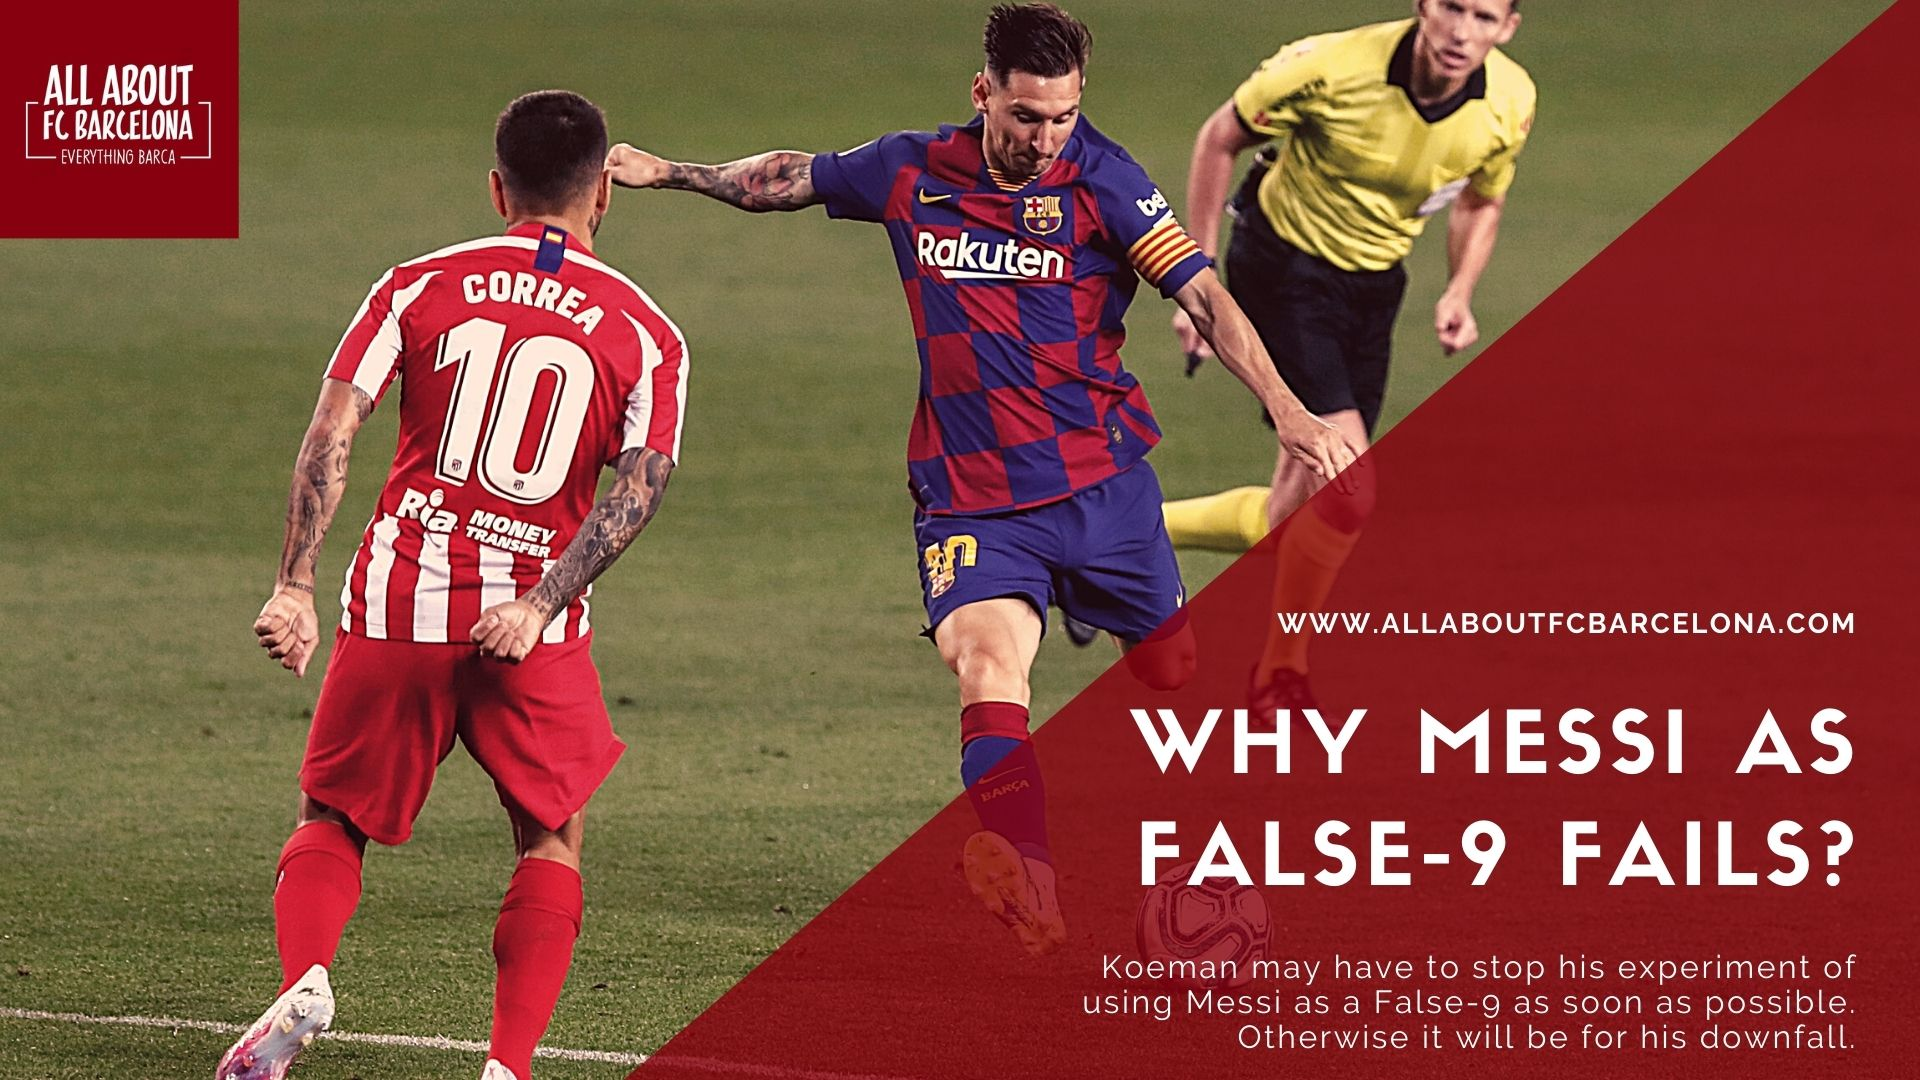 Why Messi as False-9 Experiment should Stop Immediately!